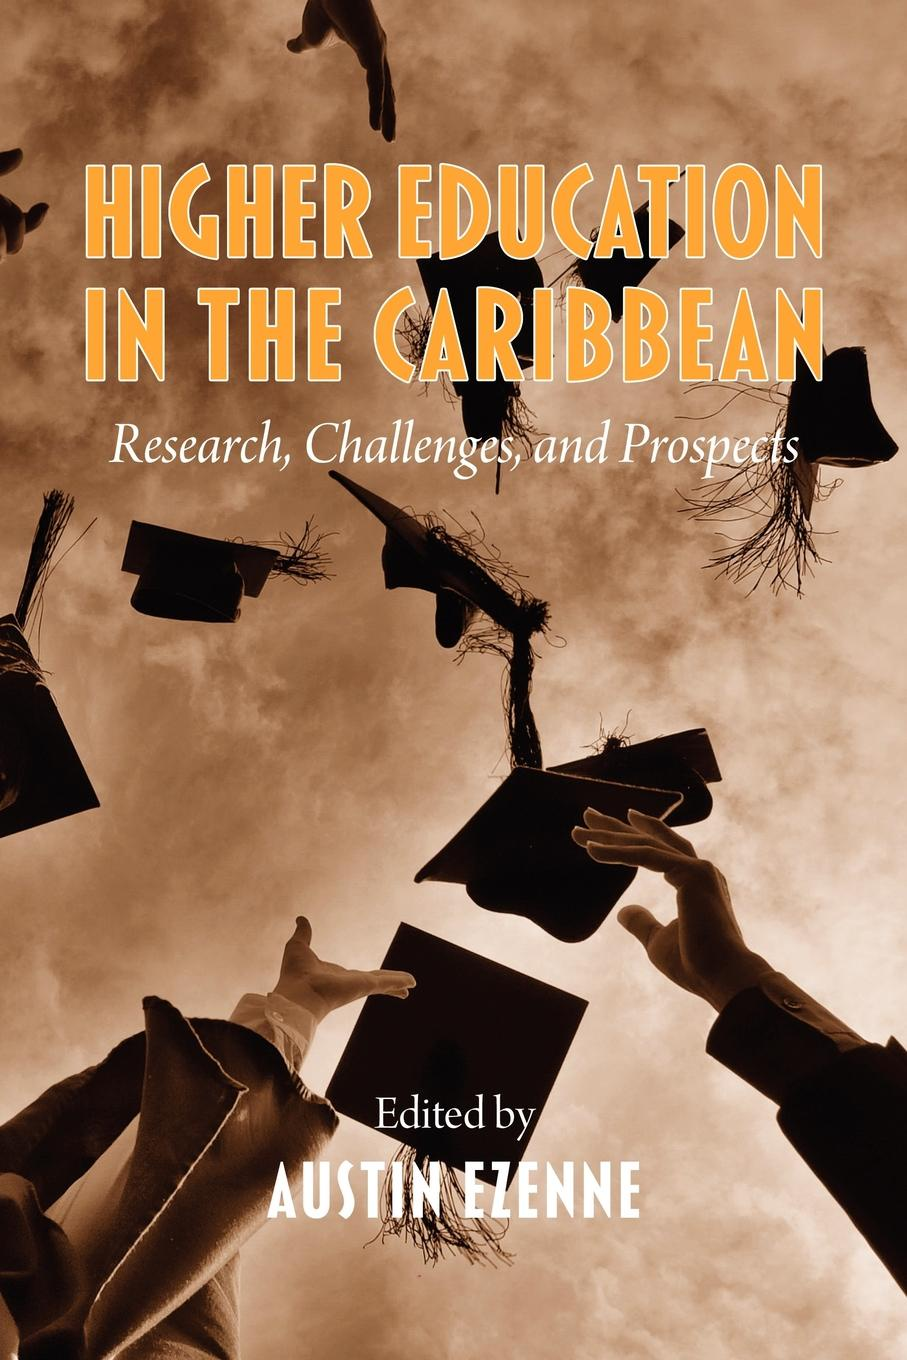 Austin Ezenne Higher Education in the Caribbean. Research, Challenges and Prospects недорго, оригинальная цена